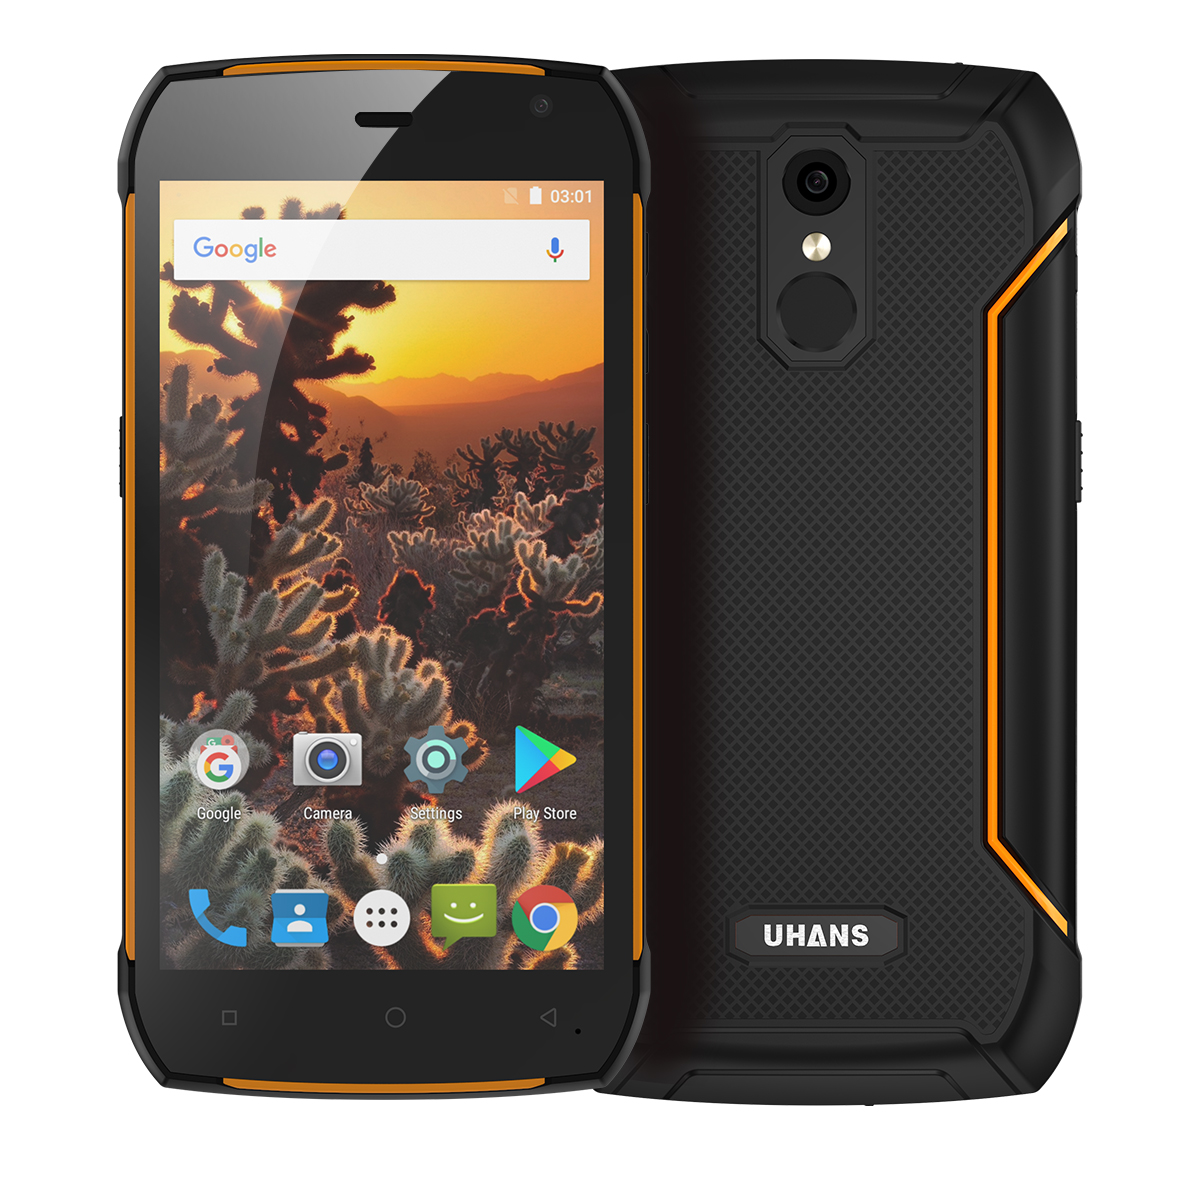 Uhans K5000 Rugged Android Phone (Orange)